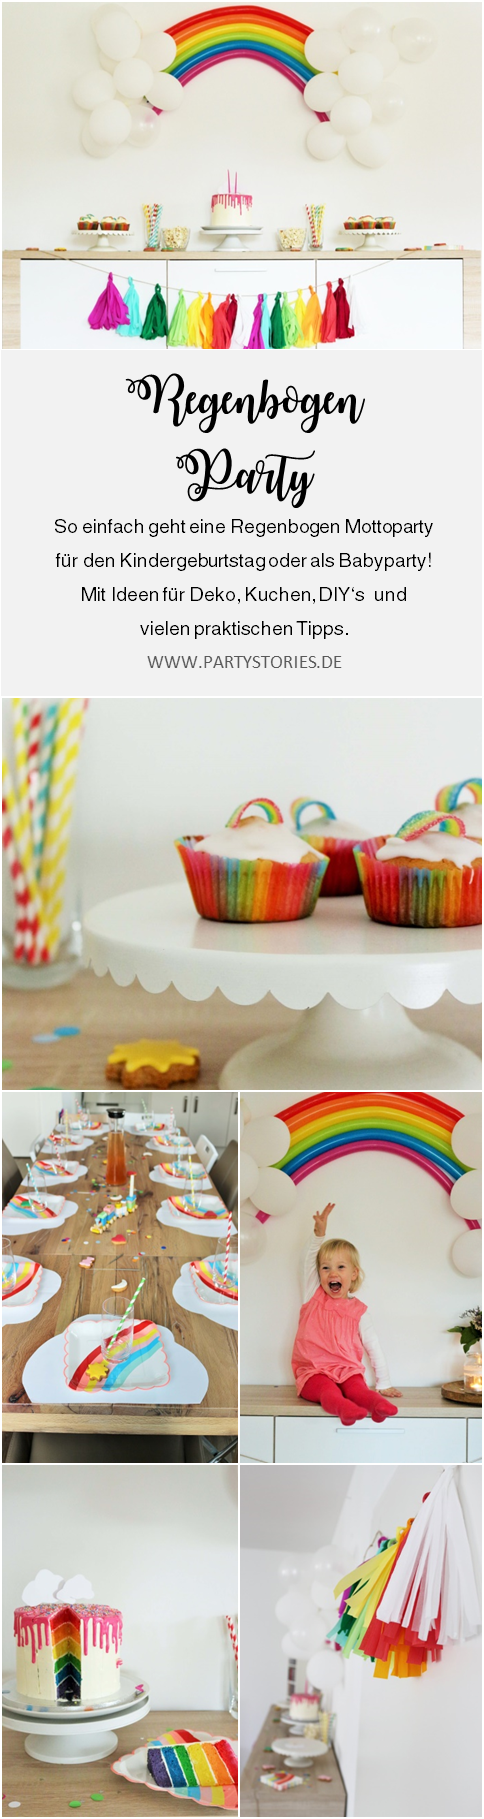 Diy Deko Ideen Geburtstag Regenbogen Party Ideen Partystories Blog